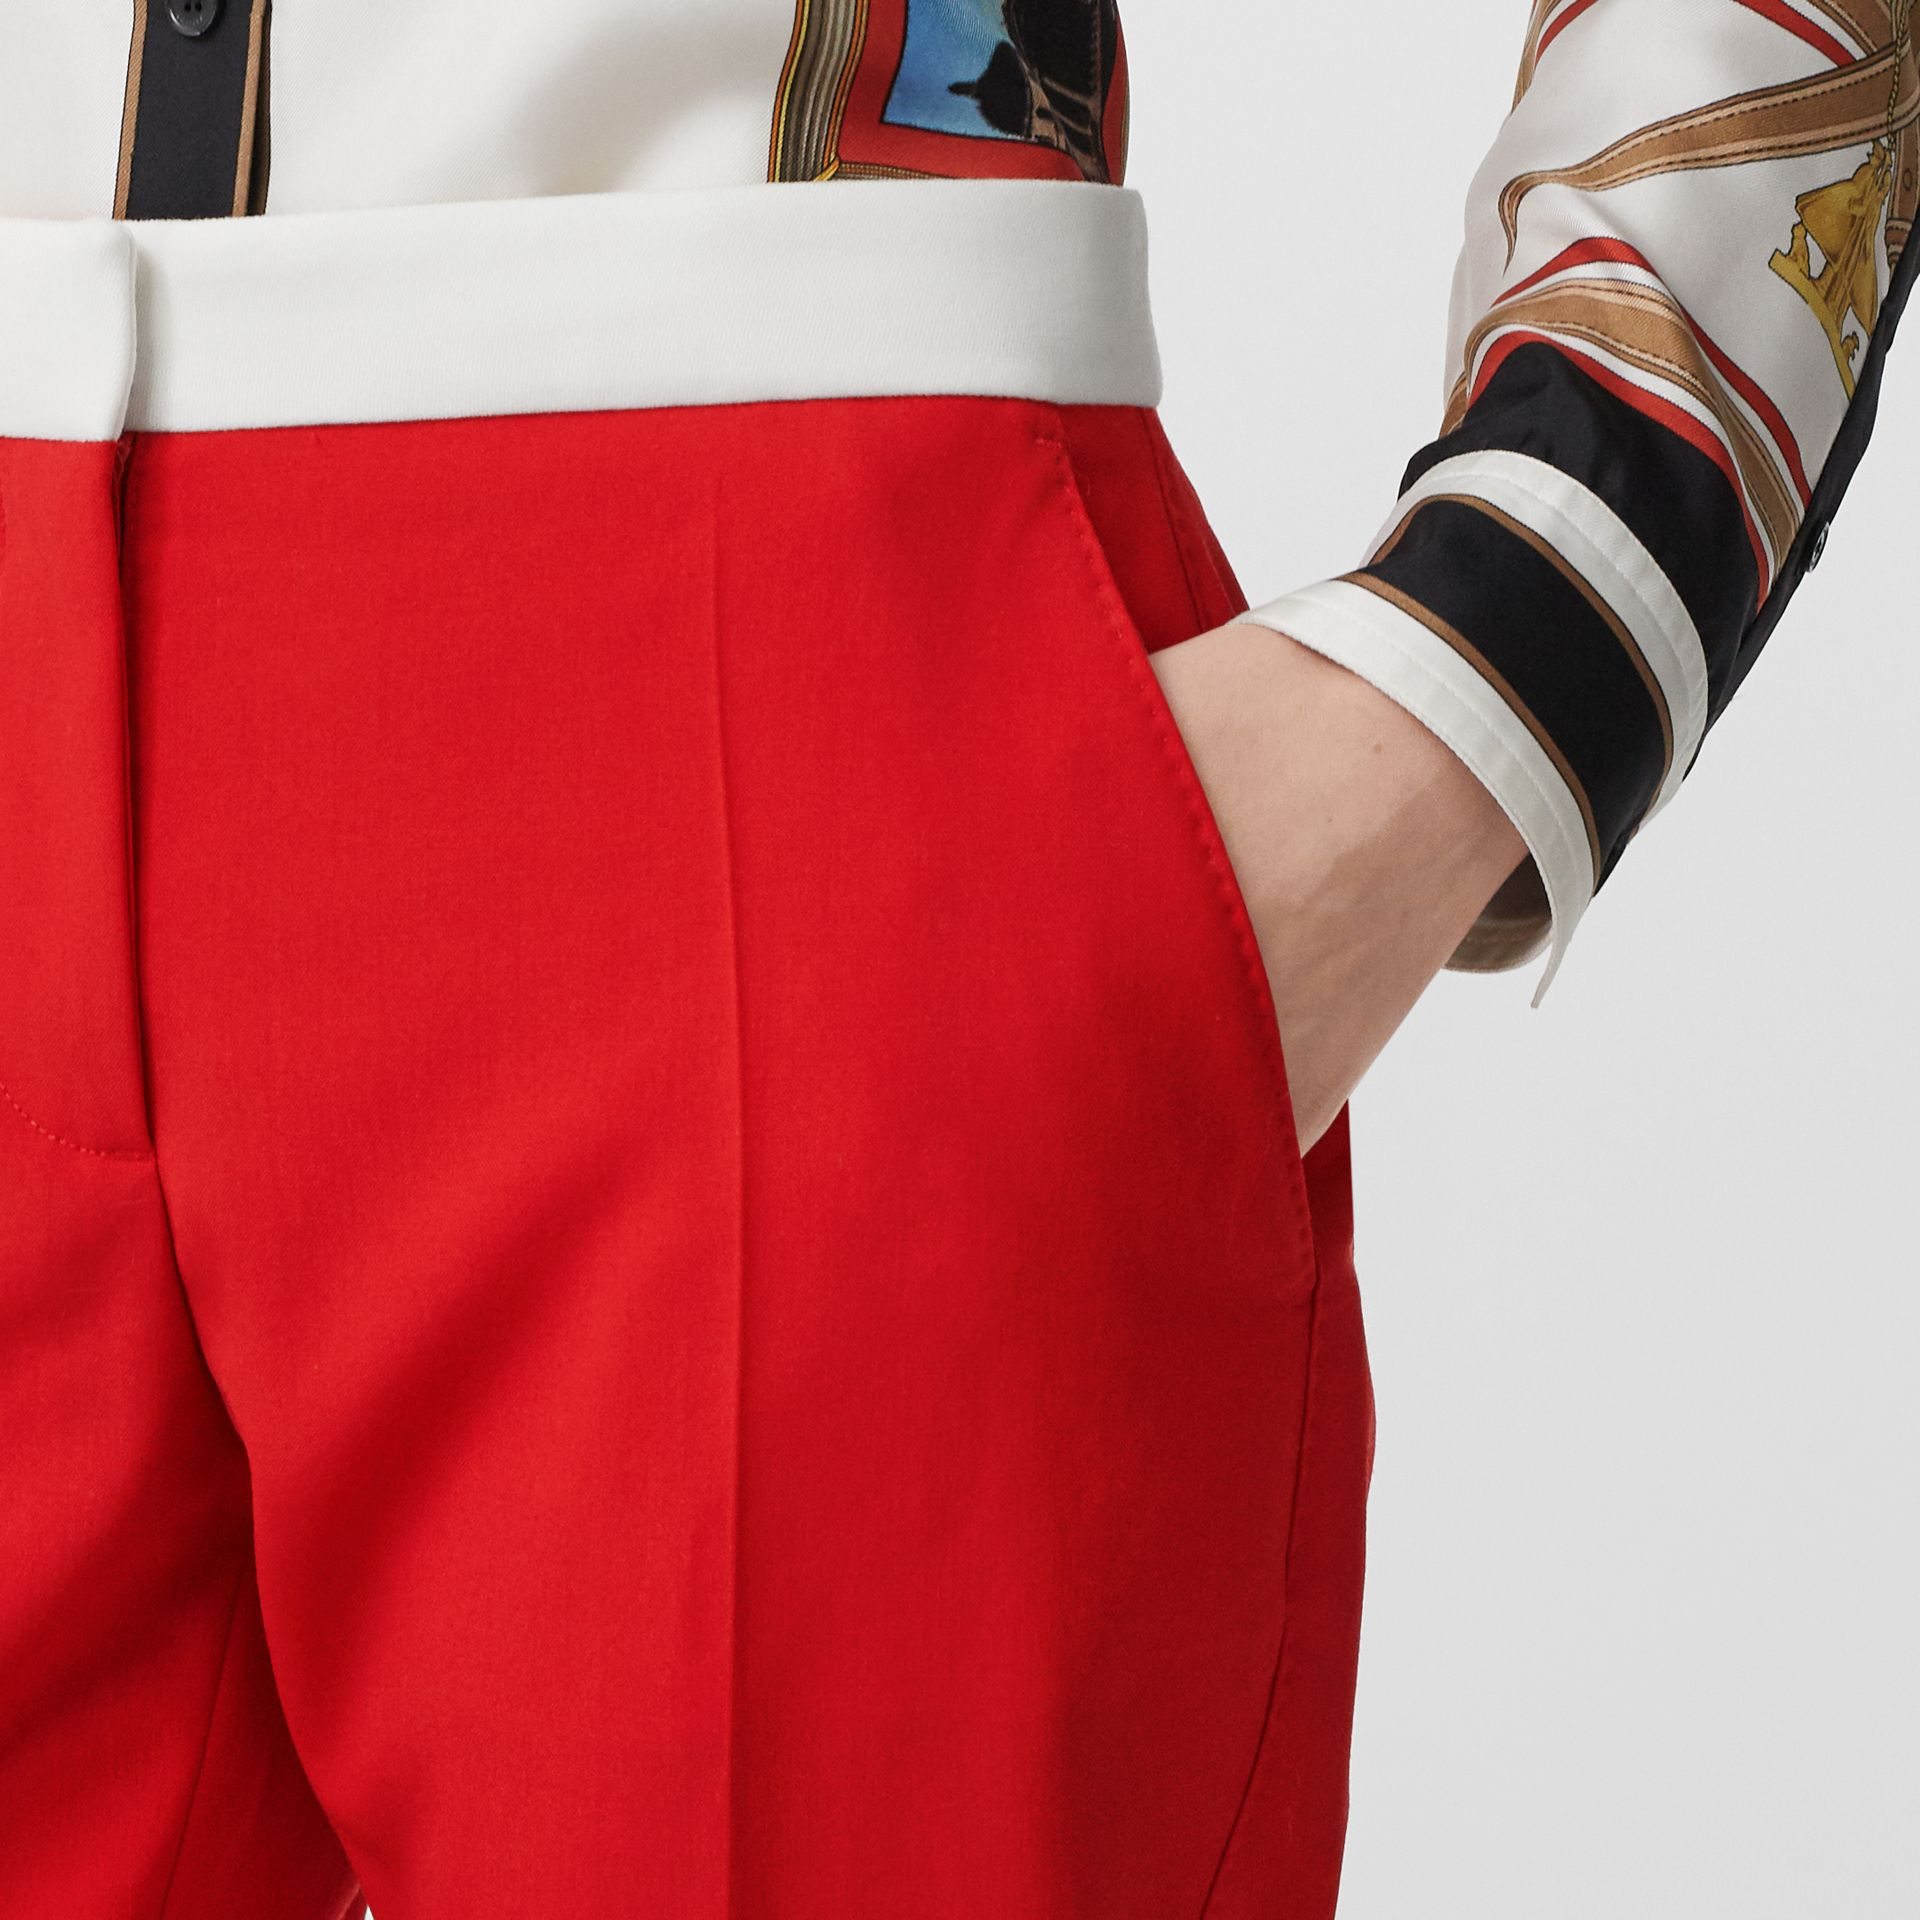 Two-tone Wool Tailored Trousers in Bright Red - Women | Burberry Hong Kong S.A.R - gallery image 1